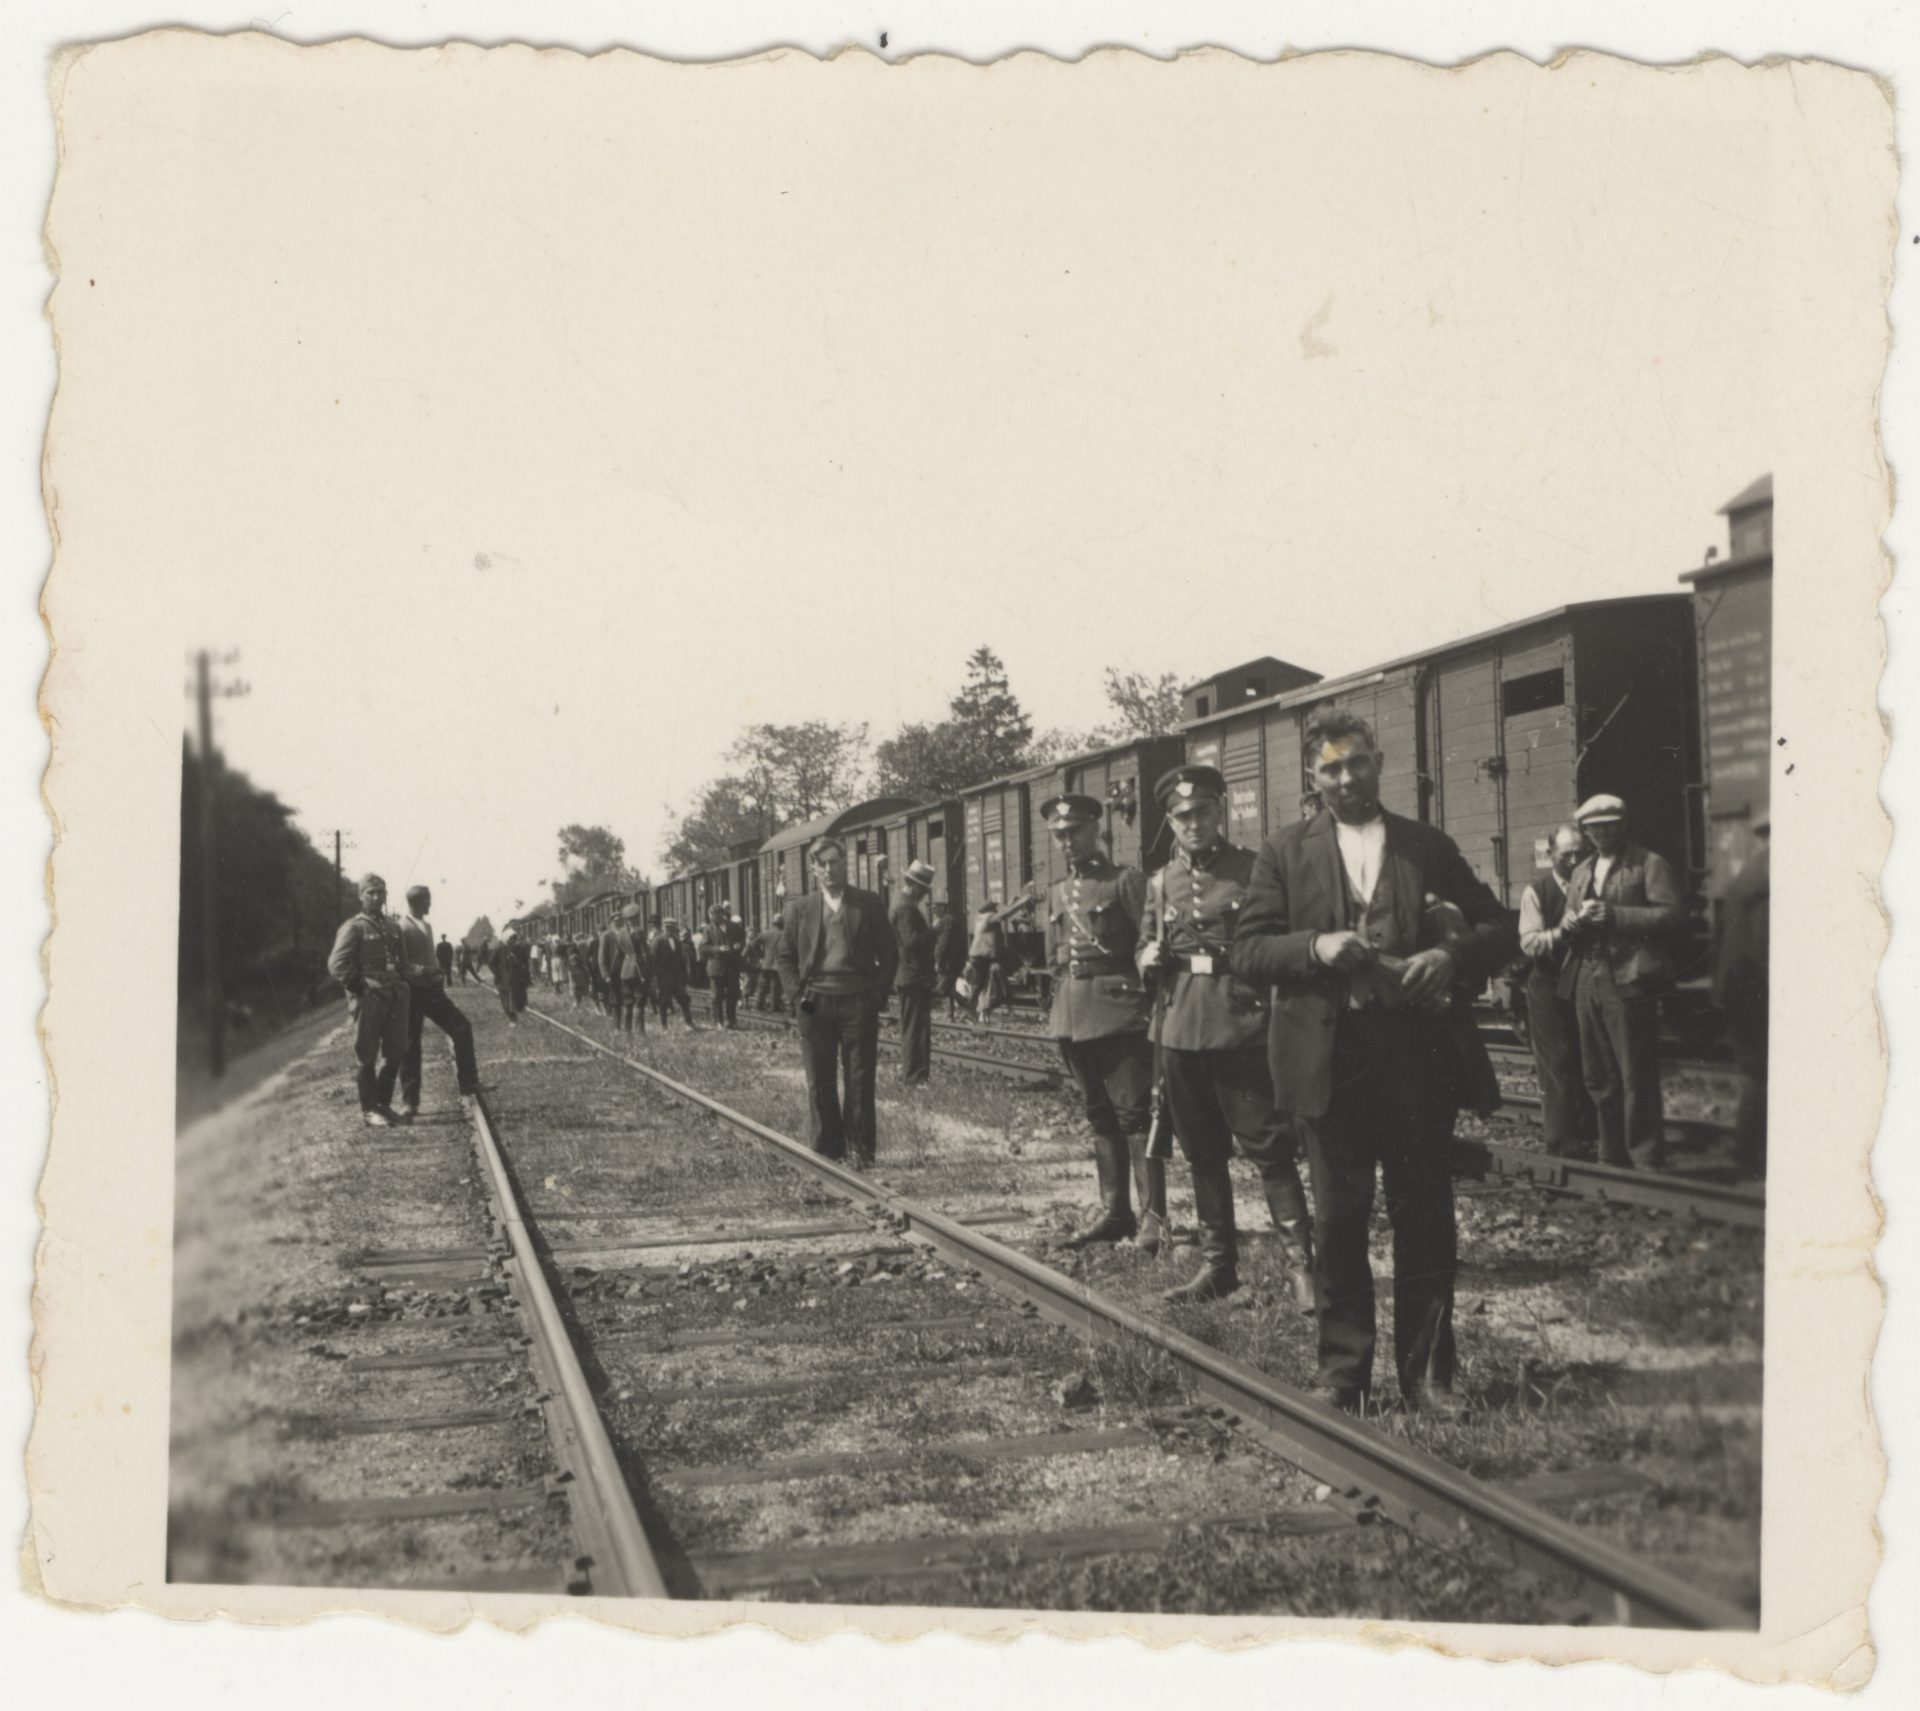 Photograph was probably taken in the Lodz ghetto in 1944. Men stand on train rails and two of them wear a police uniform. There are cattle cars in the background, which Jews were forced to board during deportations.